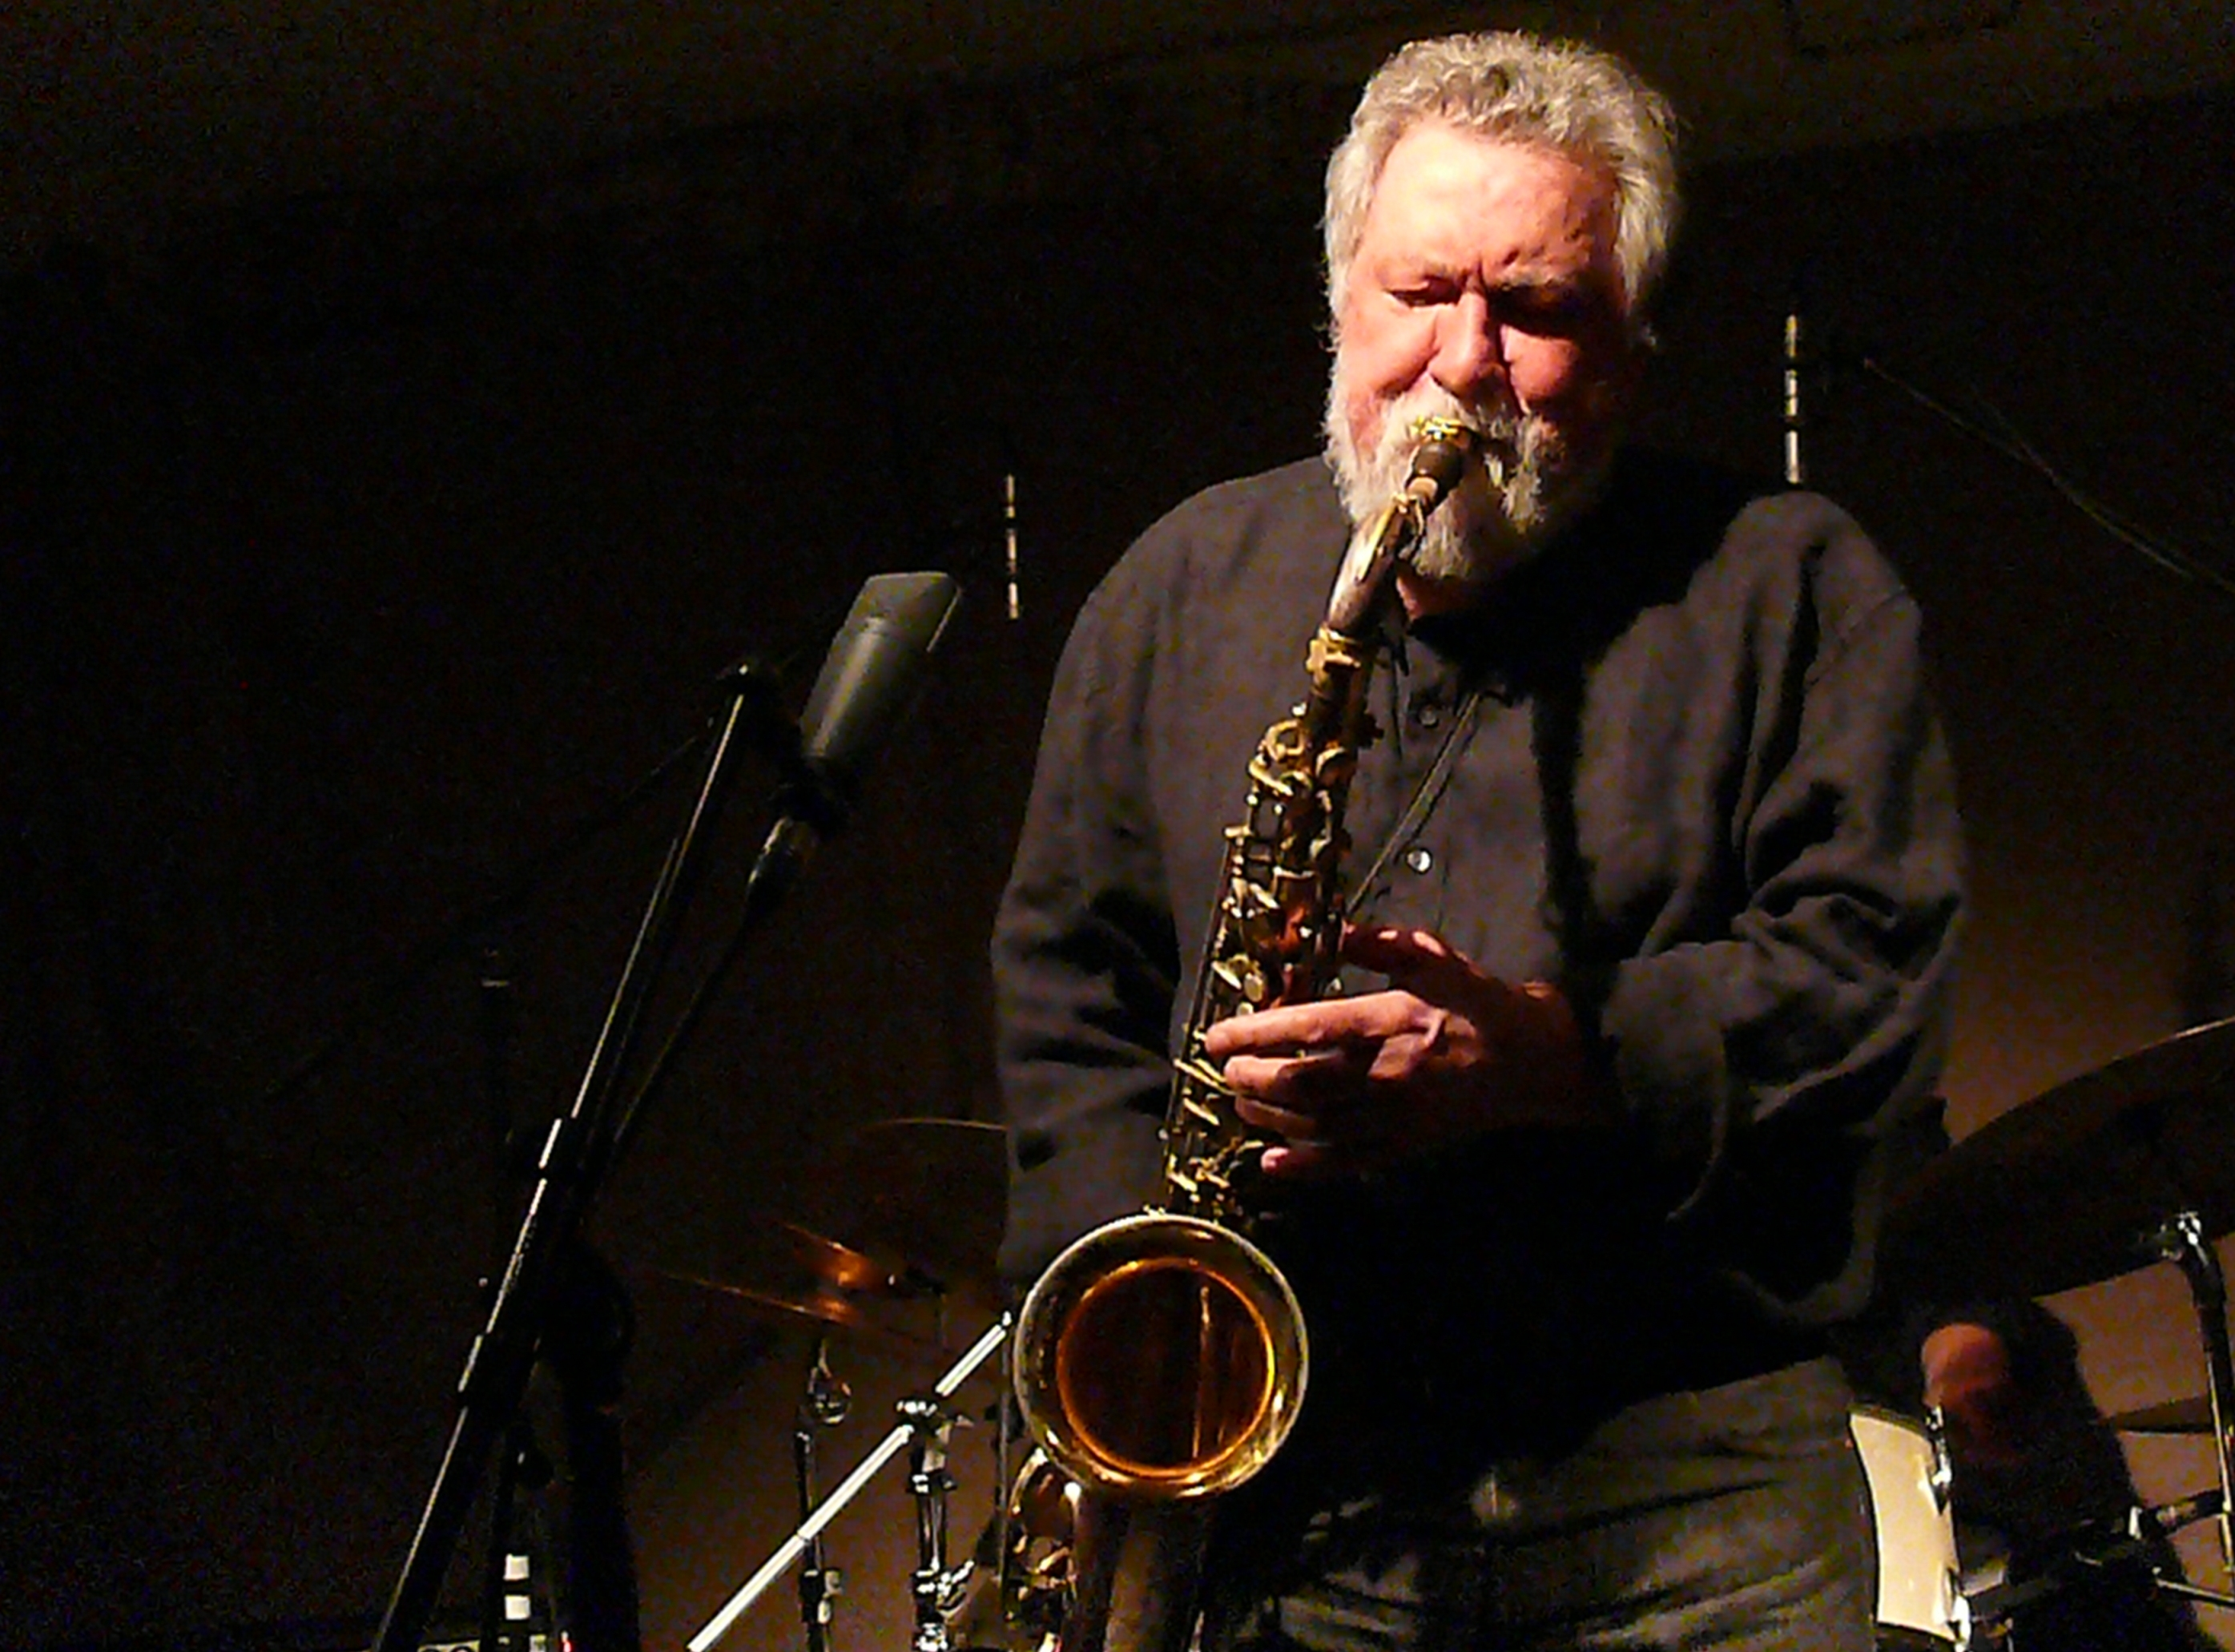 Evan Parker at Cafe Oto, London in March 2012